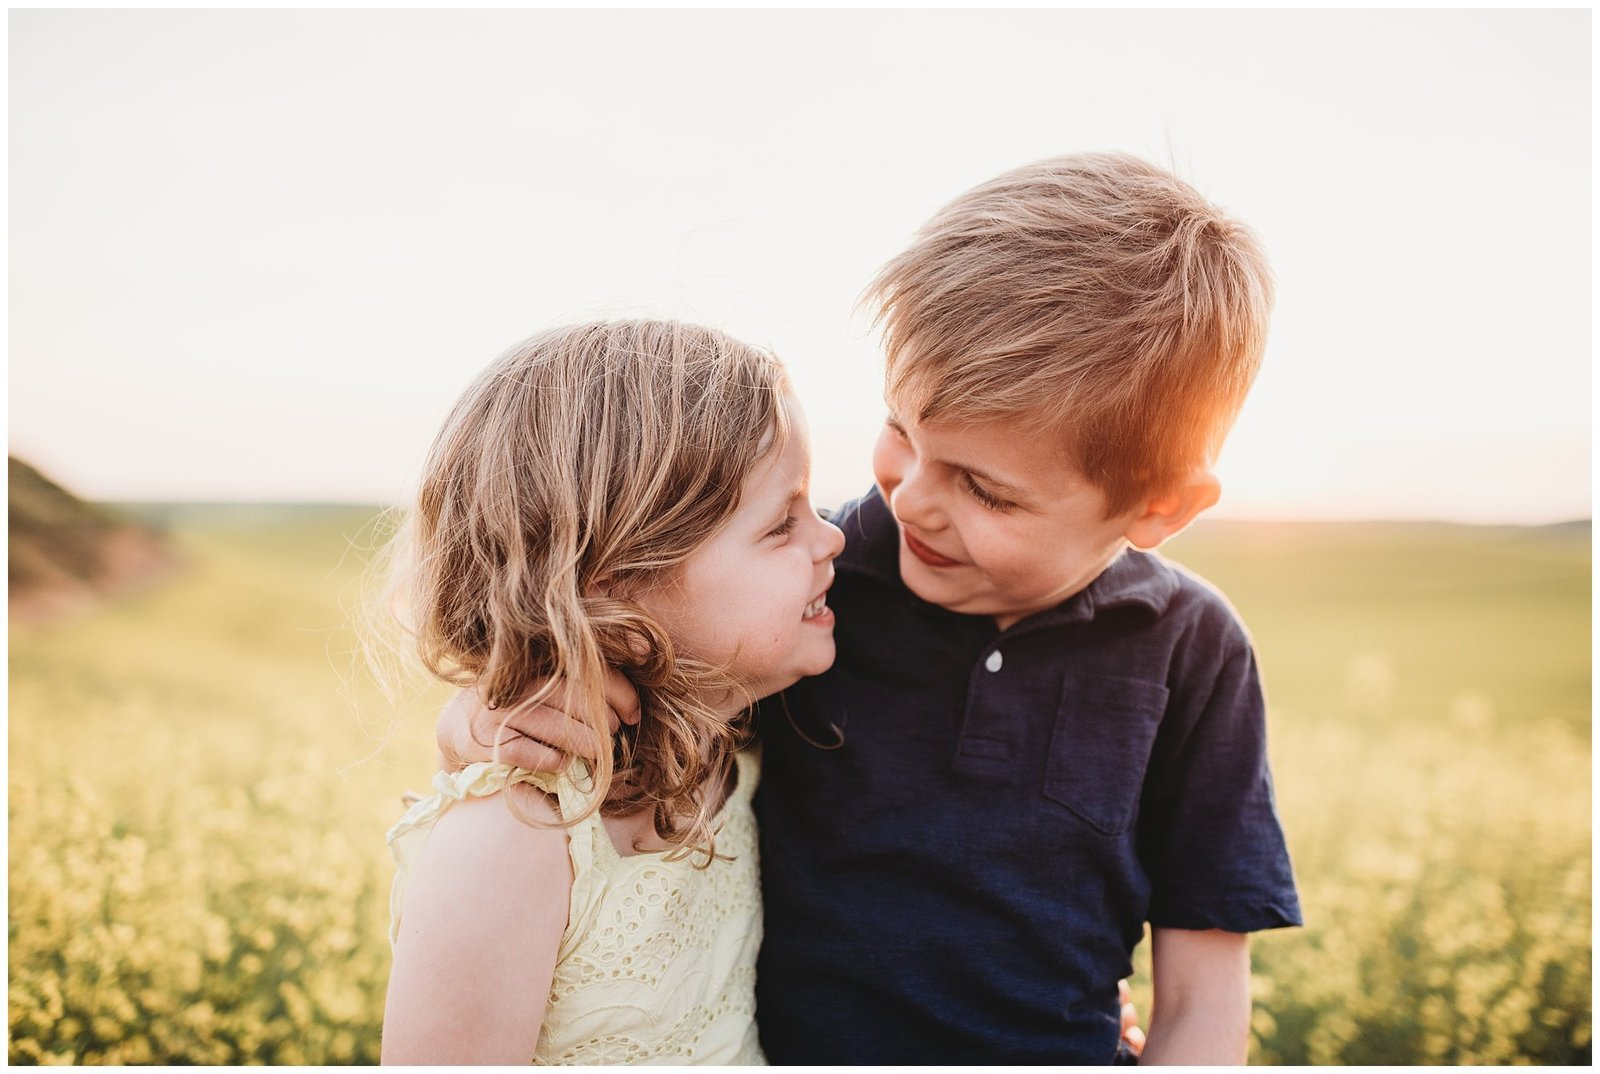 brother and sister giggling Emily Ann Photography Seattle Family Photographer